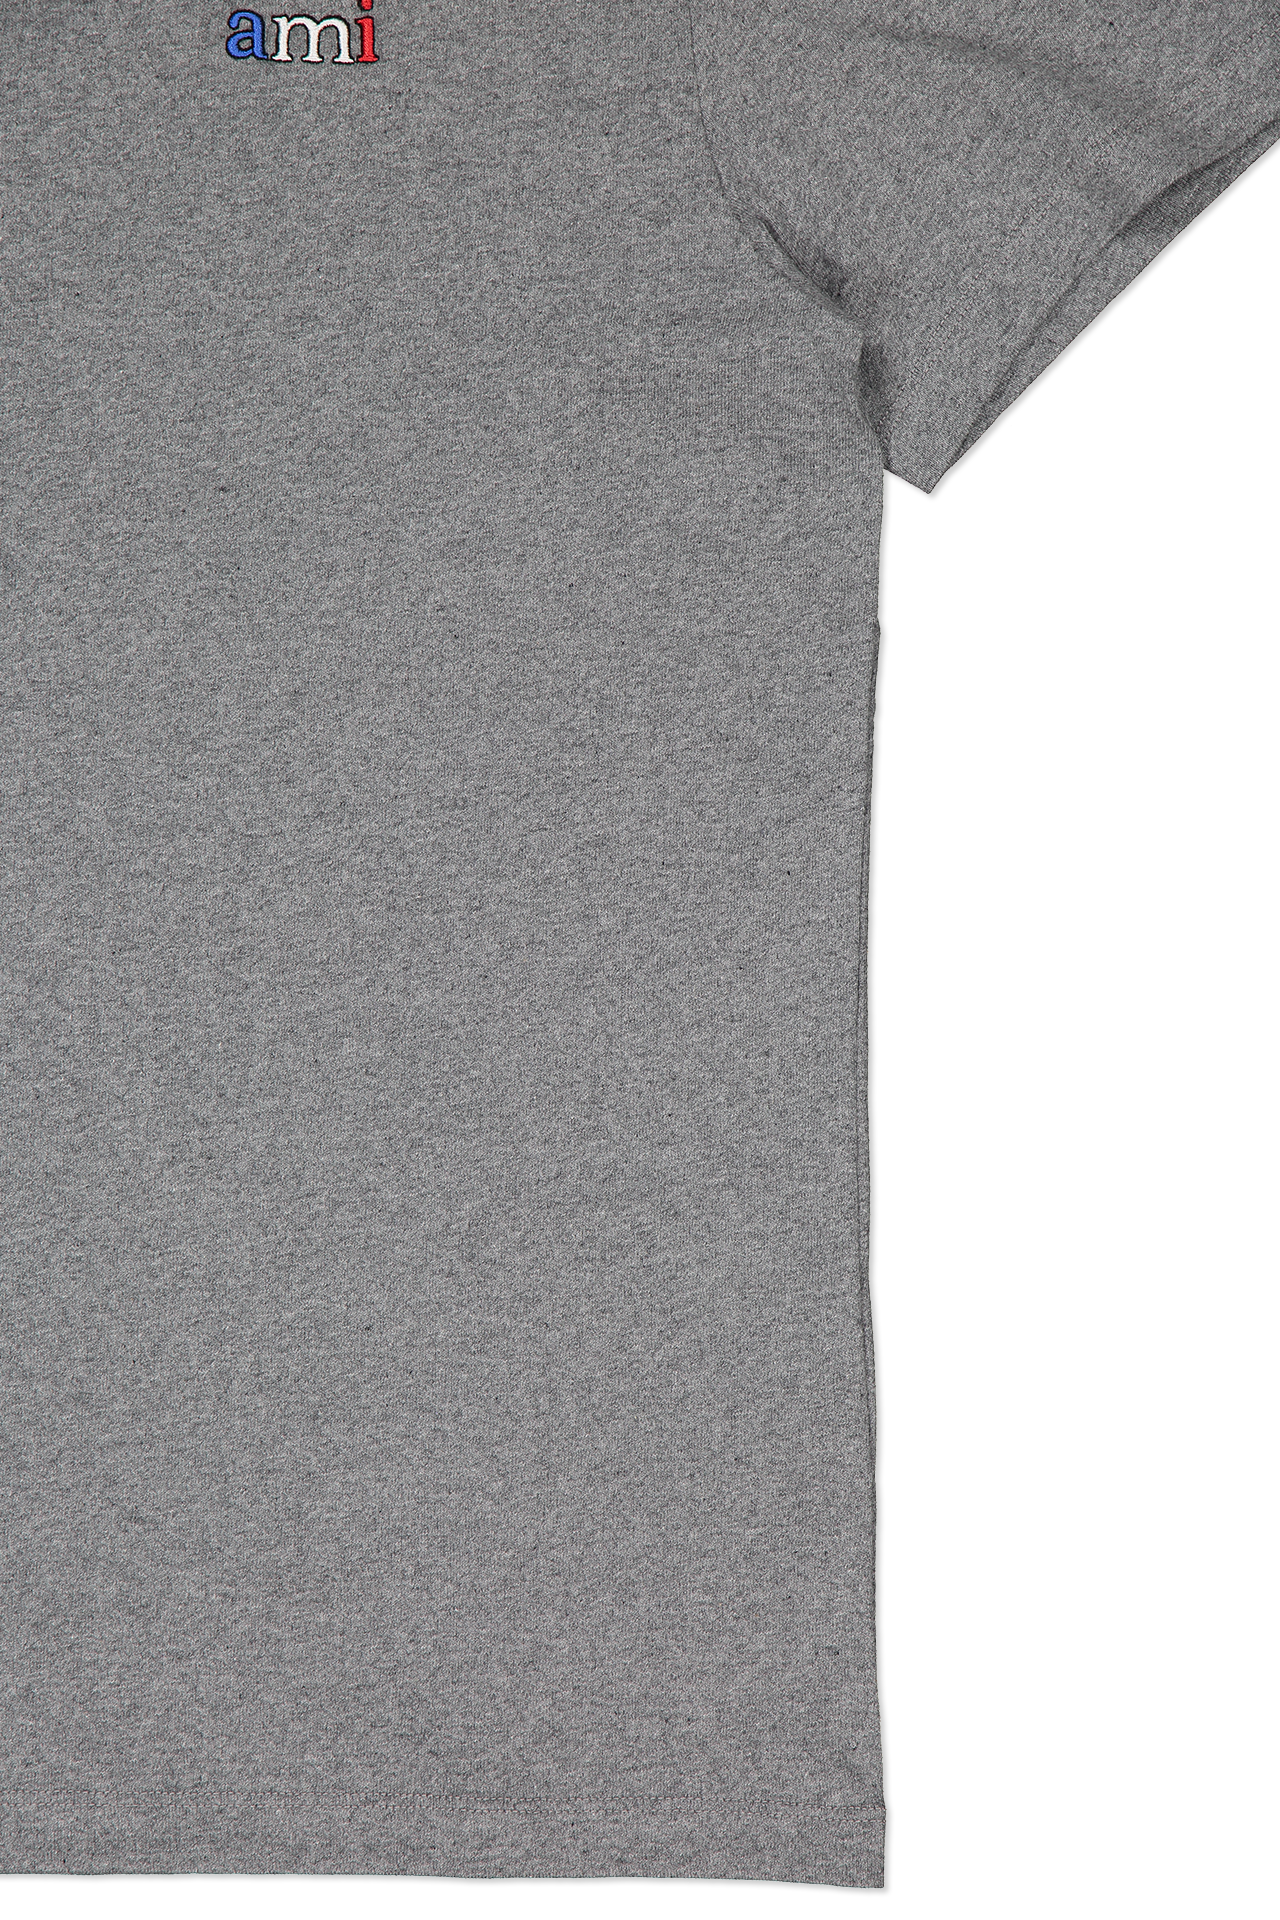 Side view sleeve image of AMI Men's Tee Broderie Ami Bbr